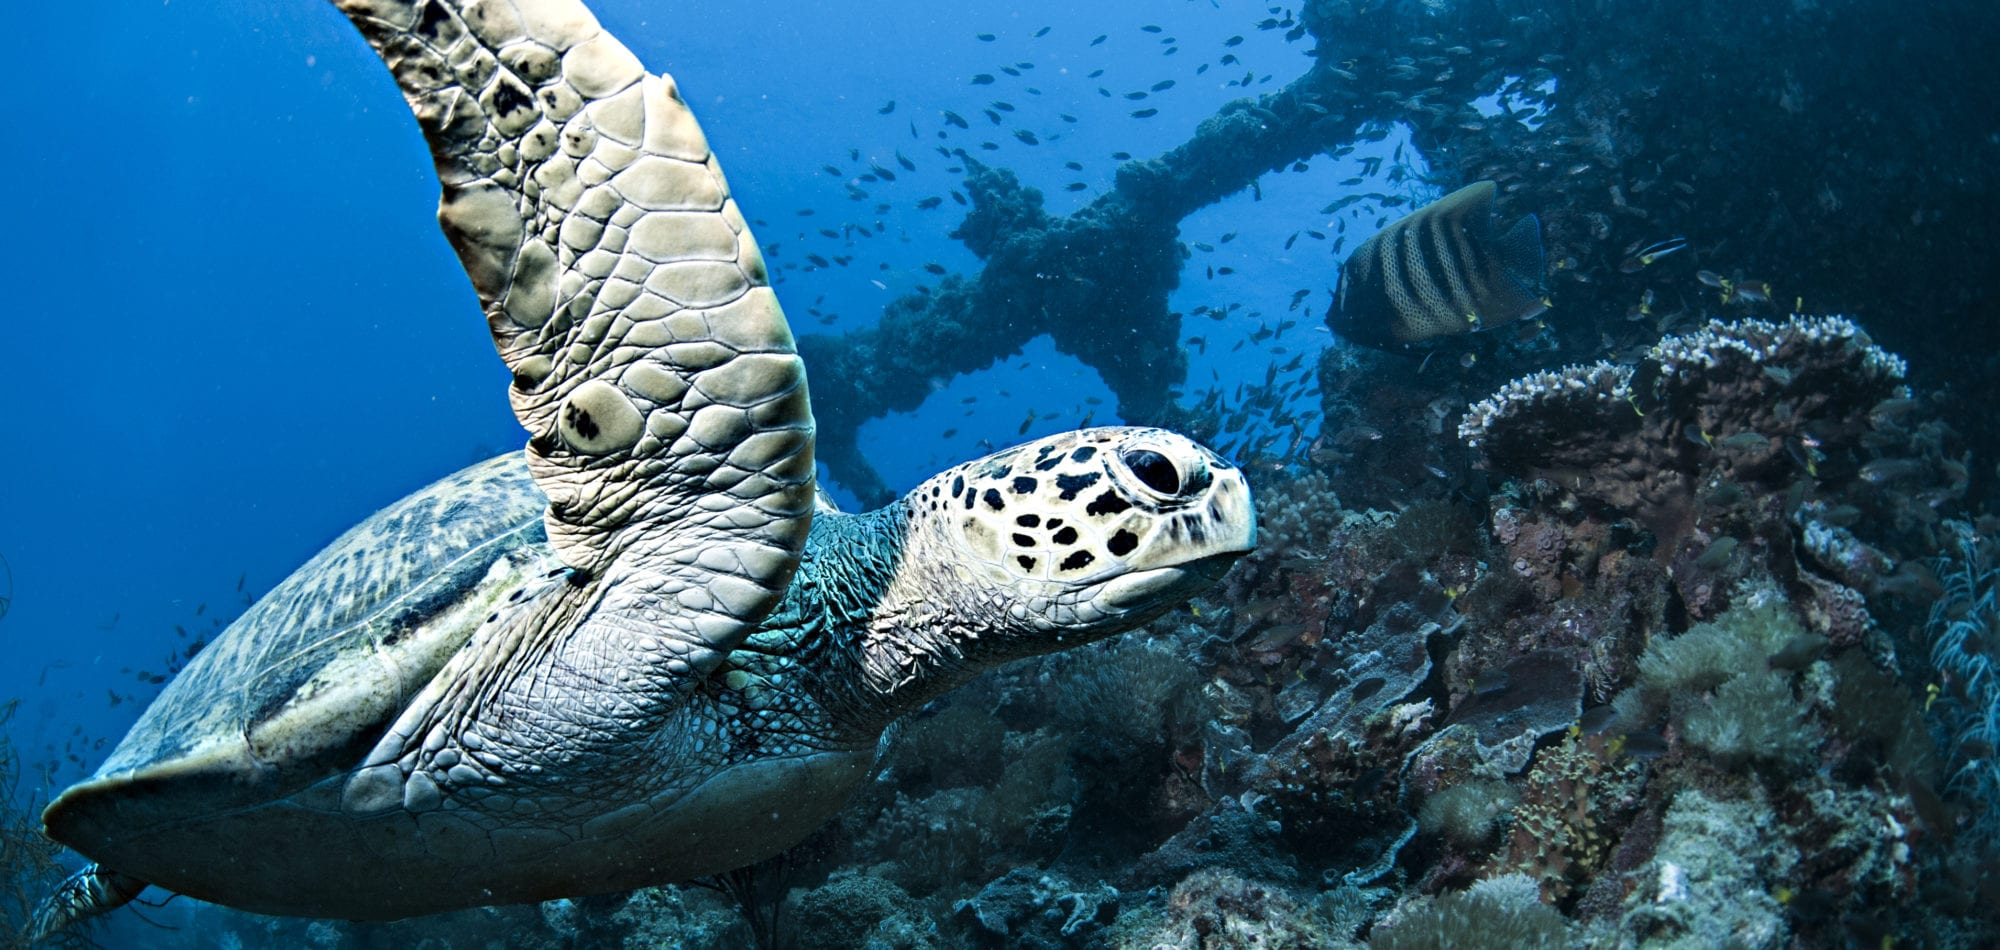 Hawksbill Turtle on the Yongala Shipwreck